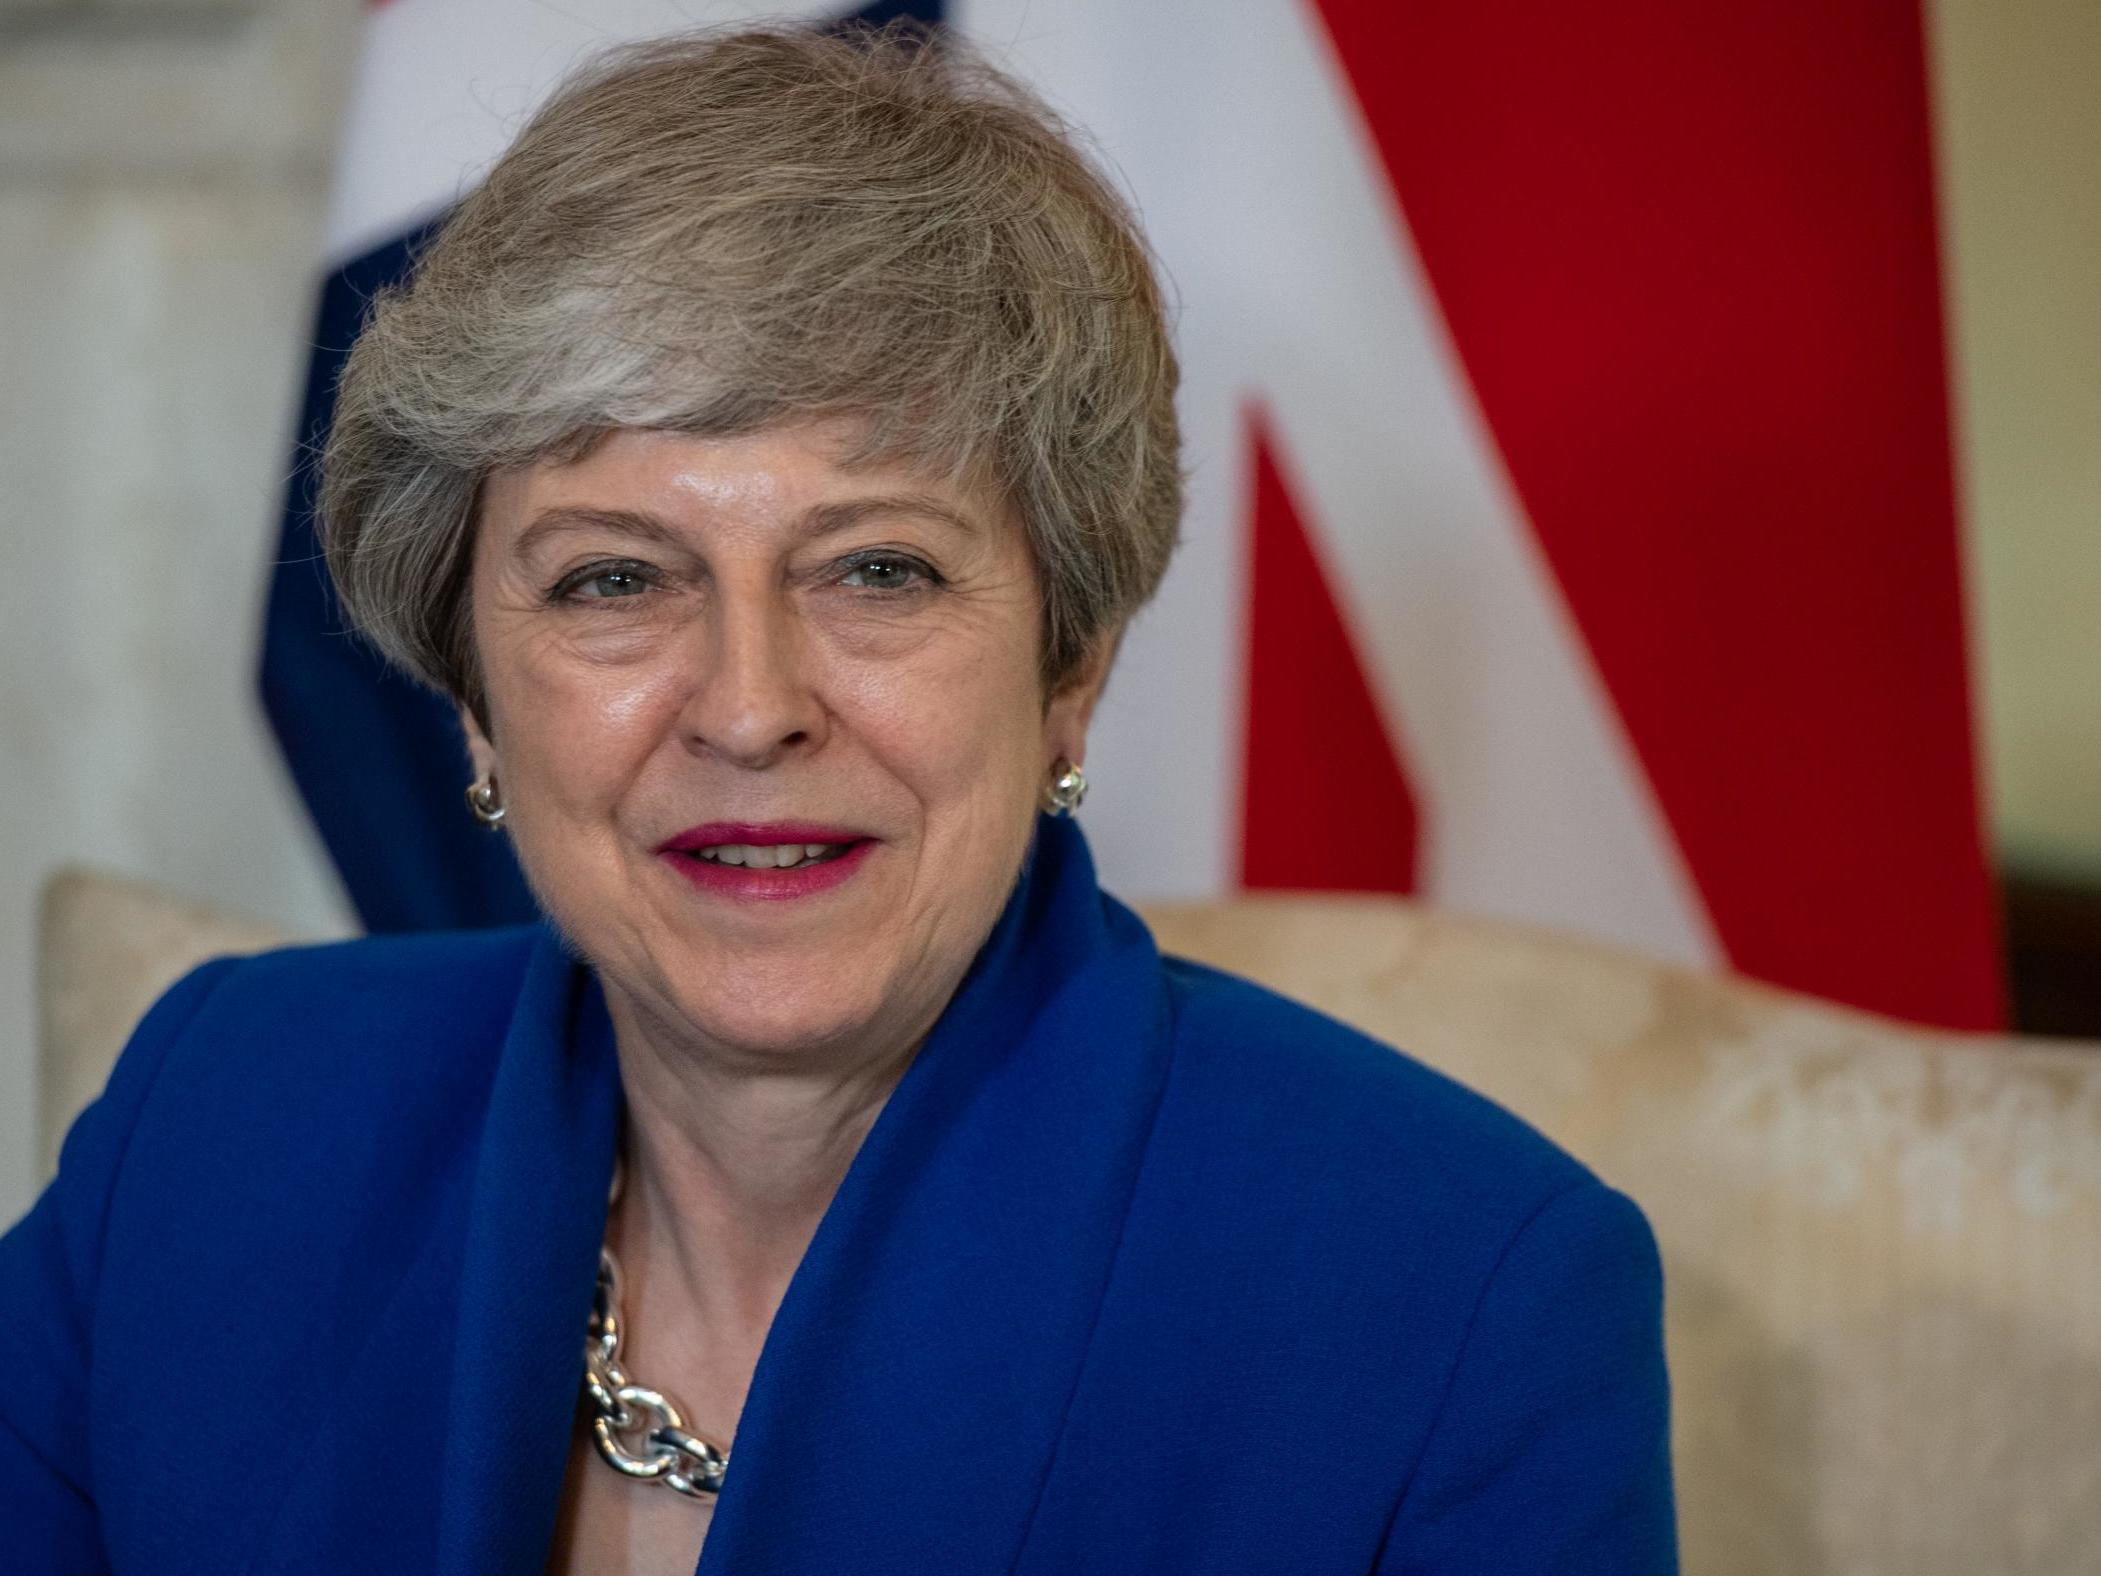 Theresa May says she could stay on as MP for next general election after leaving No 10